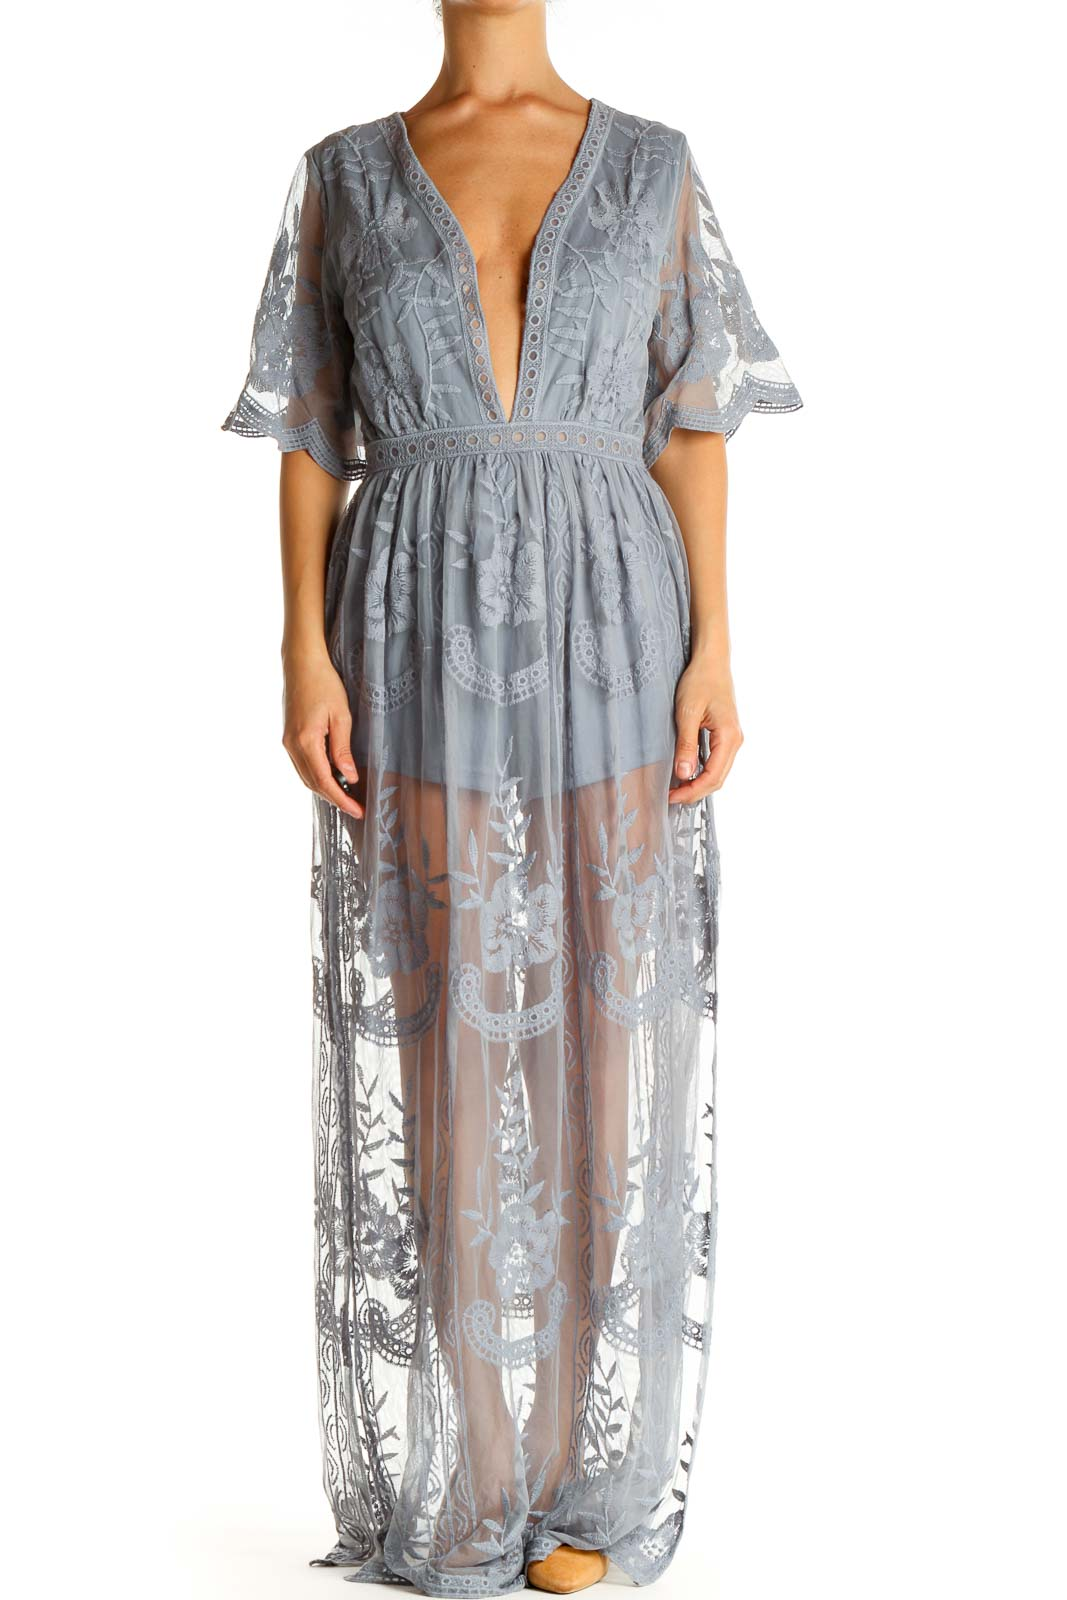 Gray Lace Bohemian Fit & Flare Dress Front